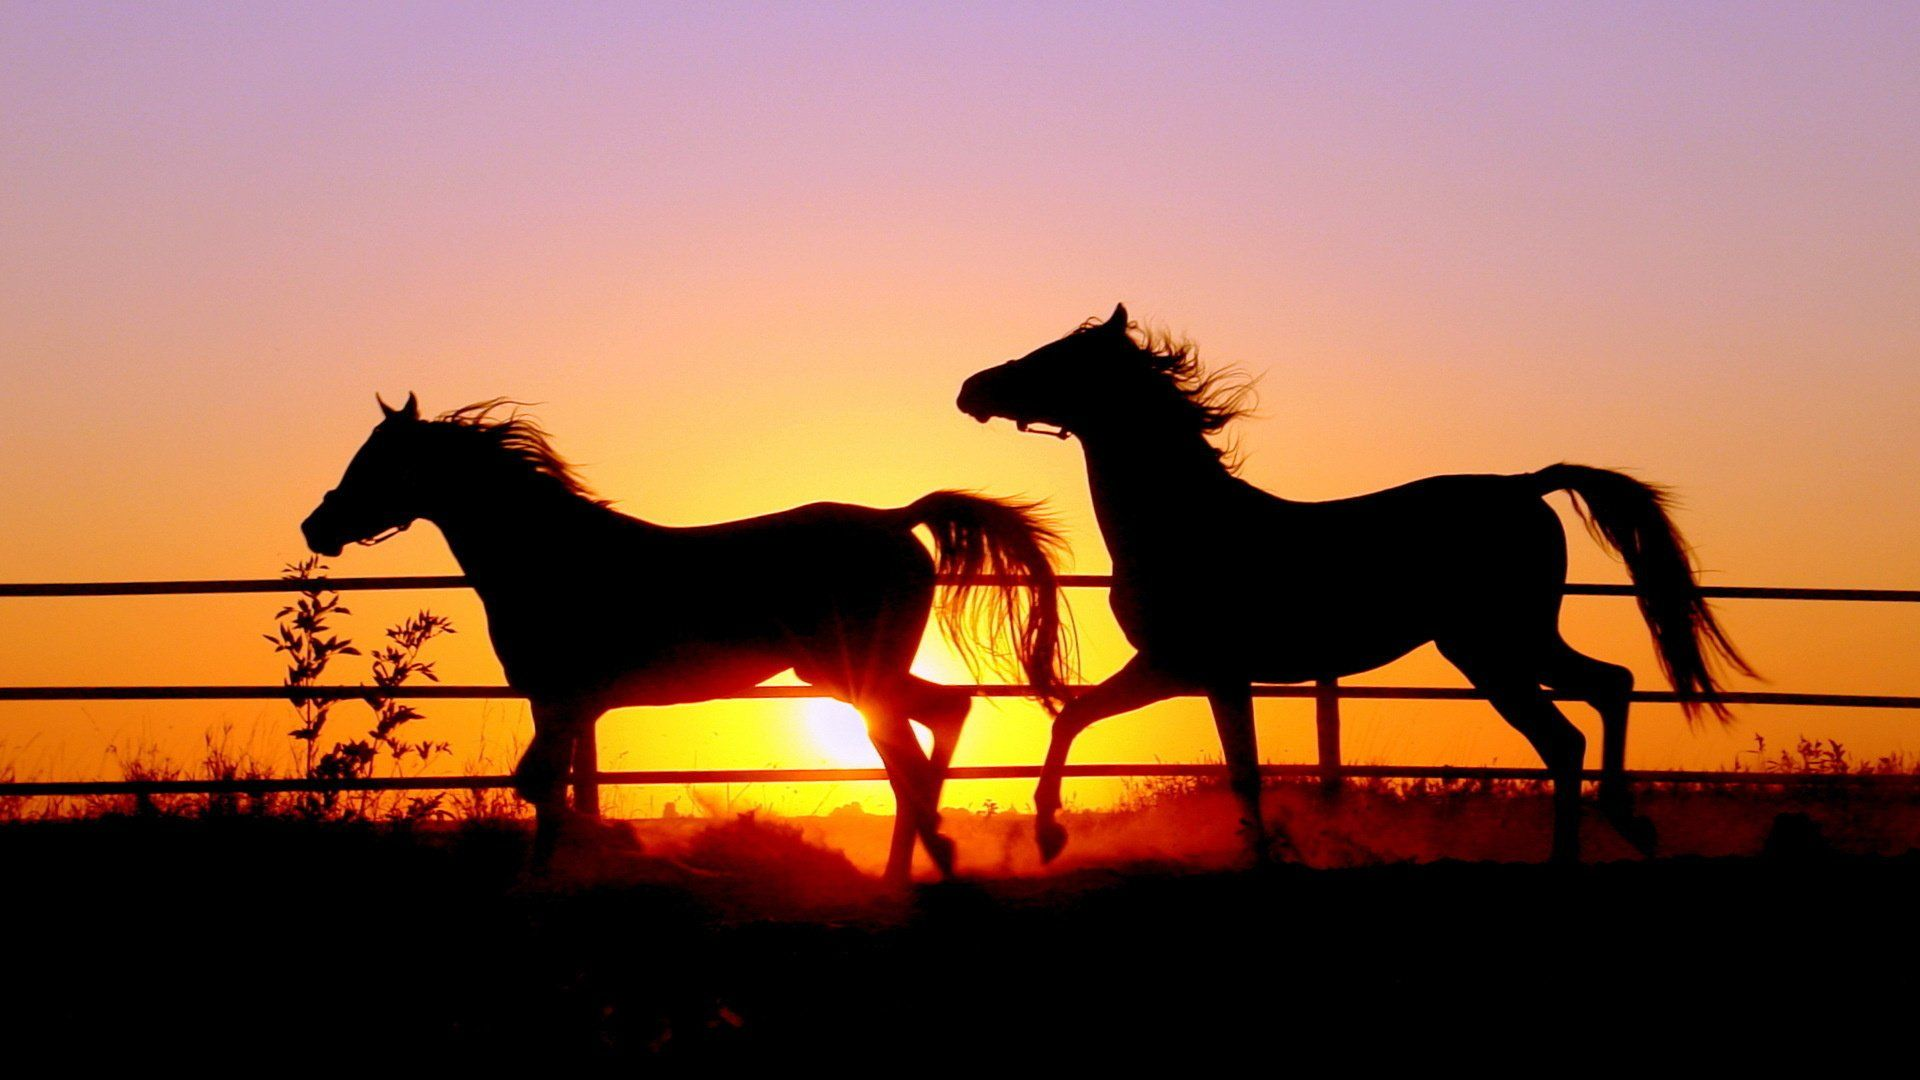 Must see Wallpaper Horse Iphone - 18400a3f2afd8331a4adc23cabd1a0b4  Graphic_48259.jpg